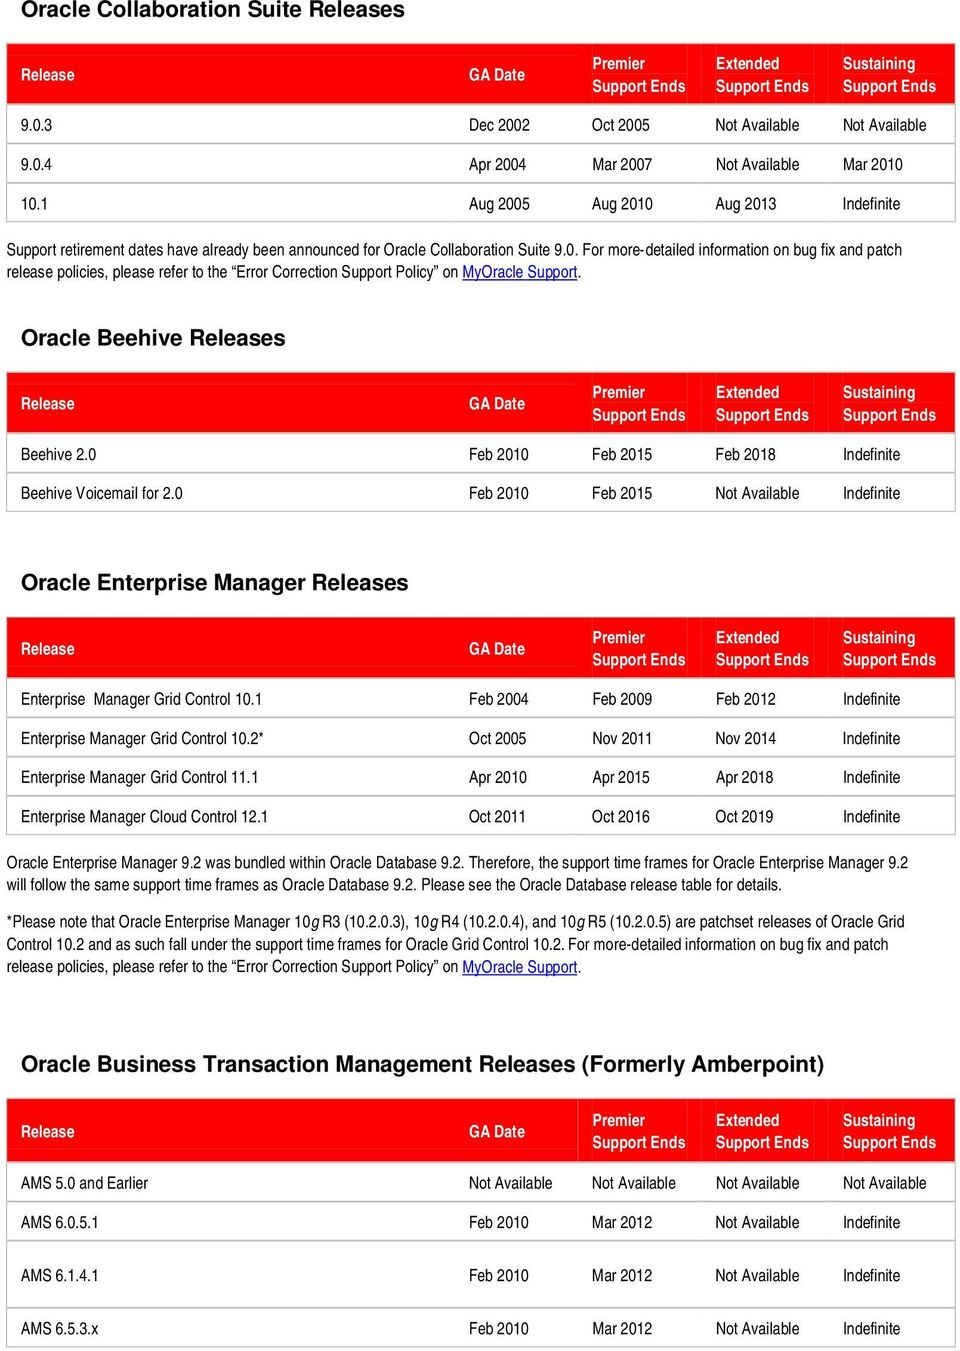 Oracle Beehive s Beehive 2.0 Feb 2010 Feb 2015 Feb 2018 Indefinite Beehive Voicemail for 2.0 Feb 2010 Feb 2015 Not Available Indefinite Oracle Enterprise Manager s Enterprise Manager Grid Control 10.